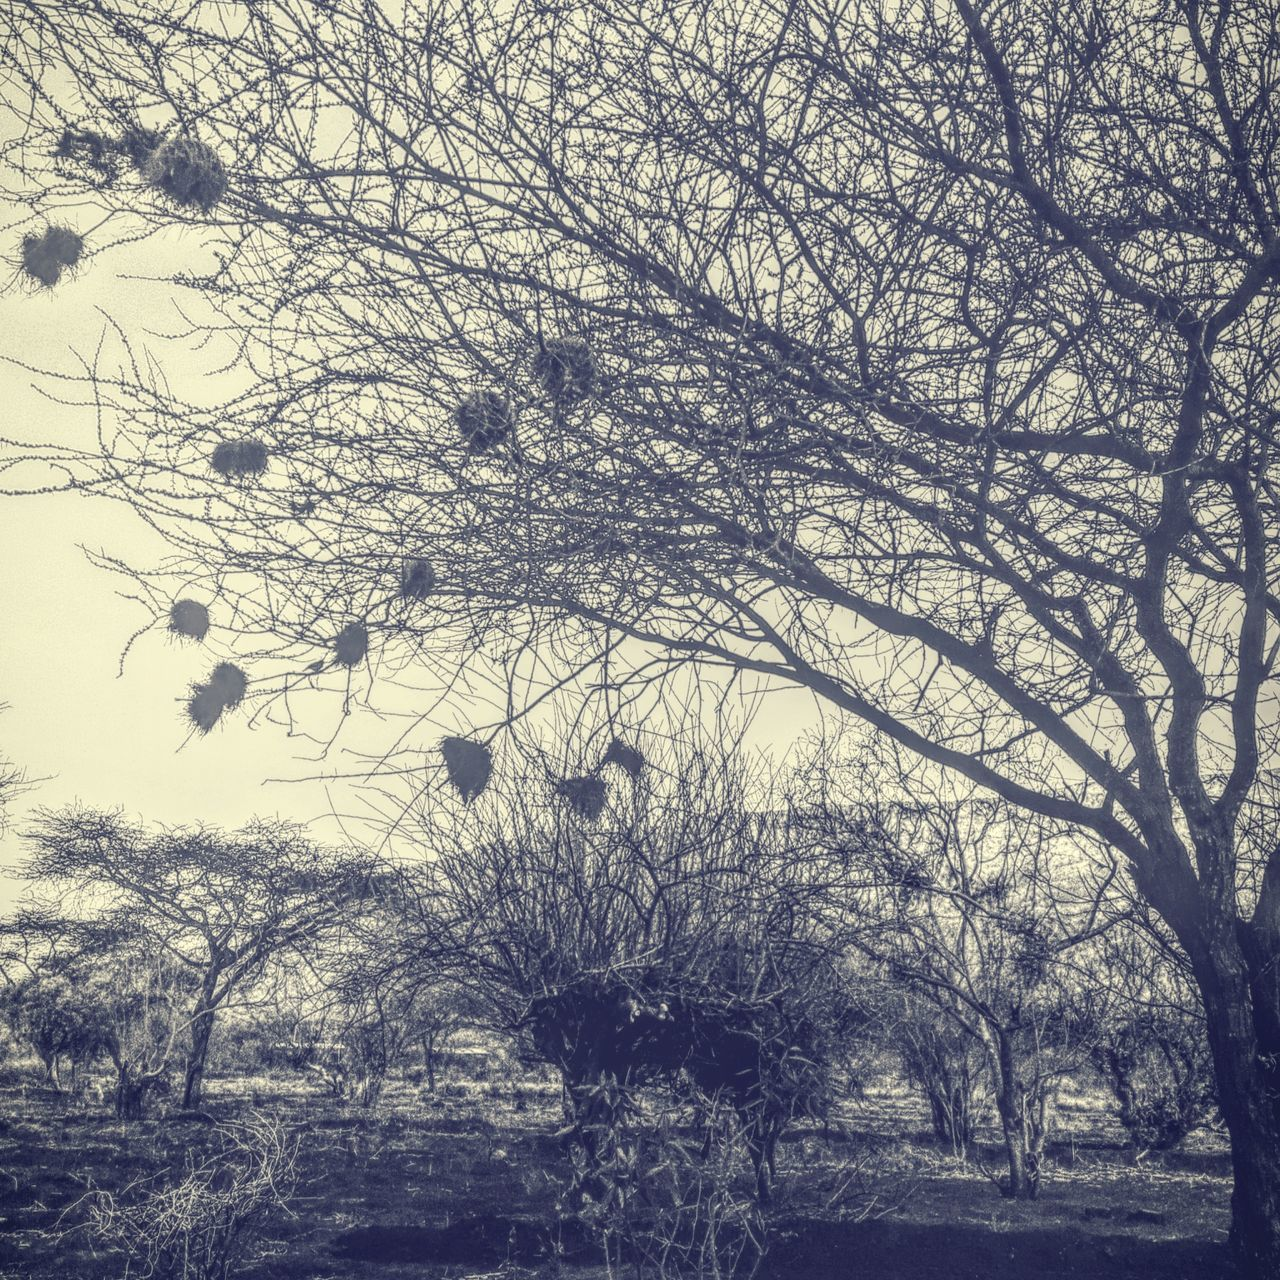 Tree Nature Growth Outdoors Mobile Photography